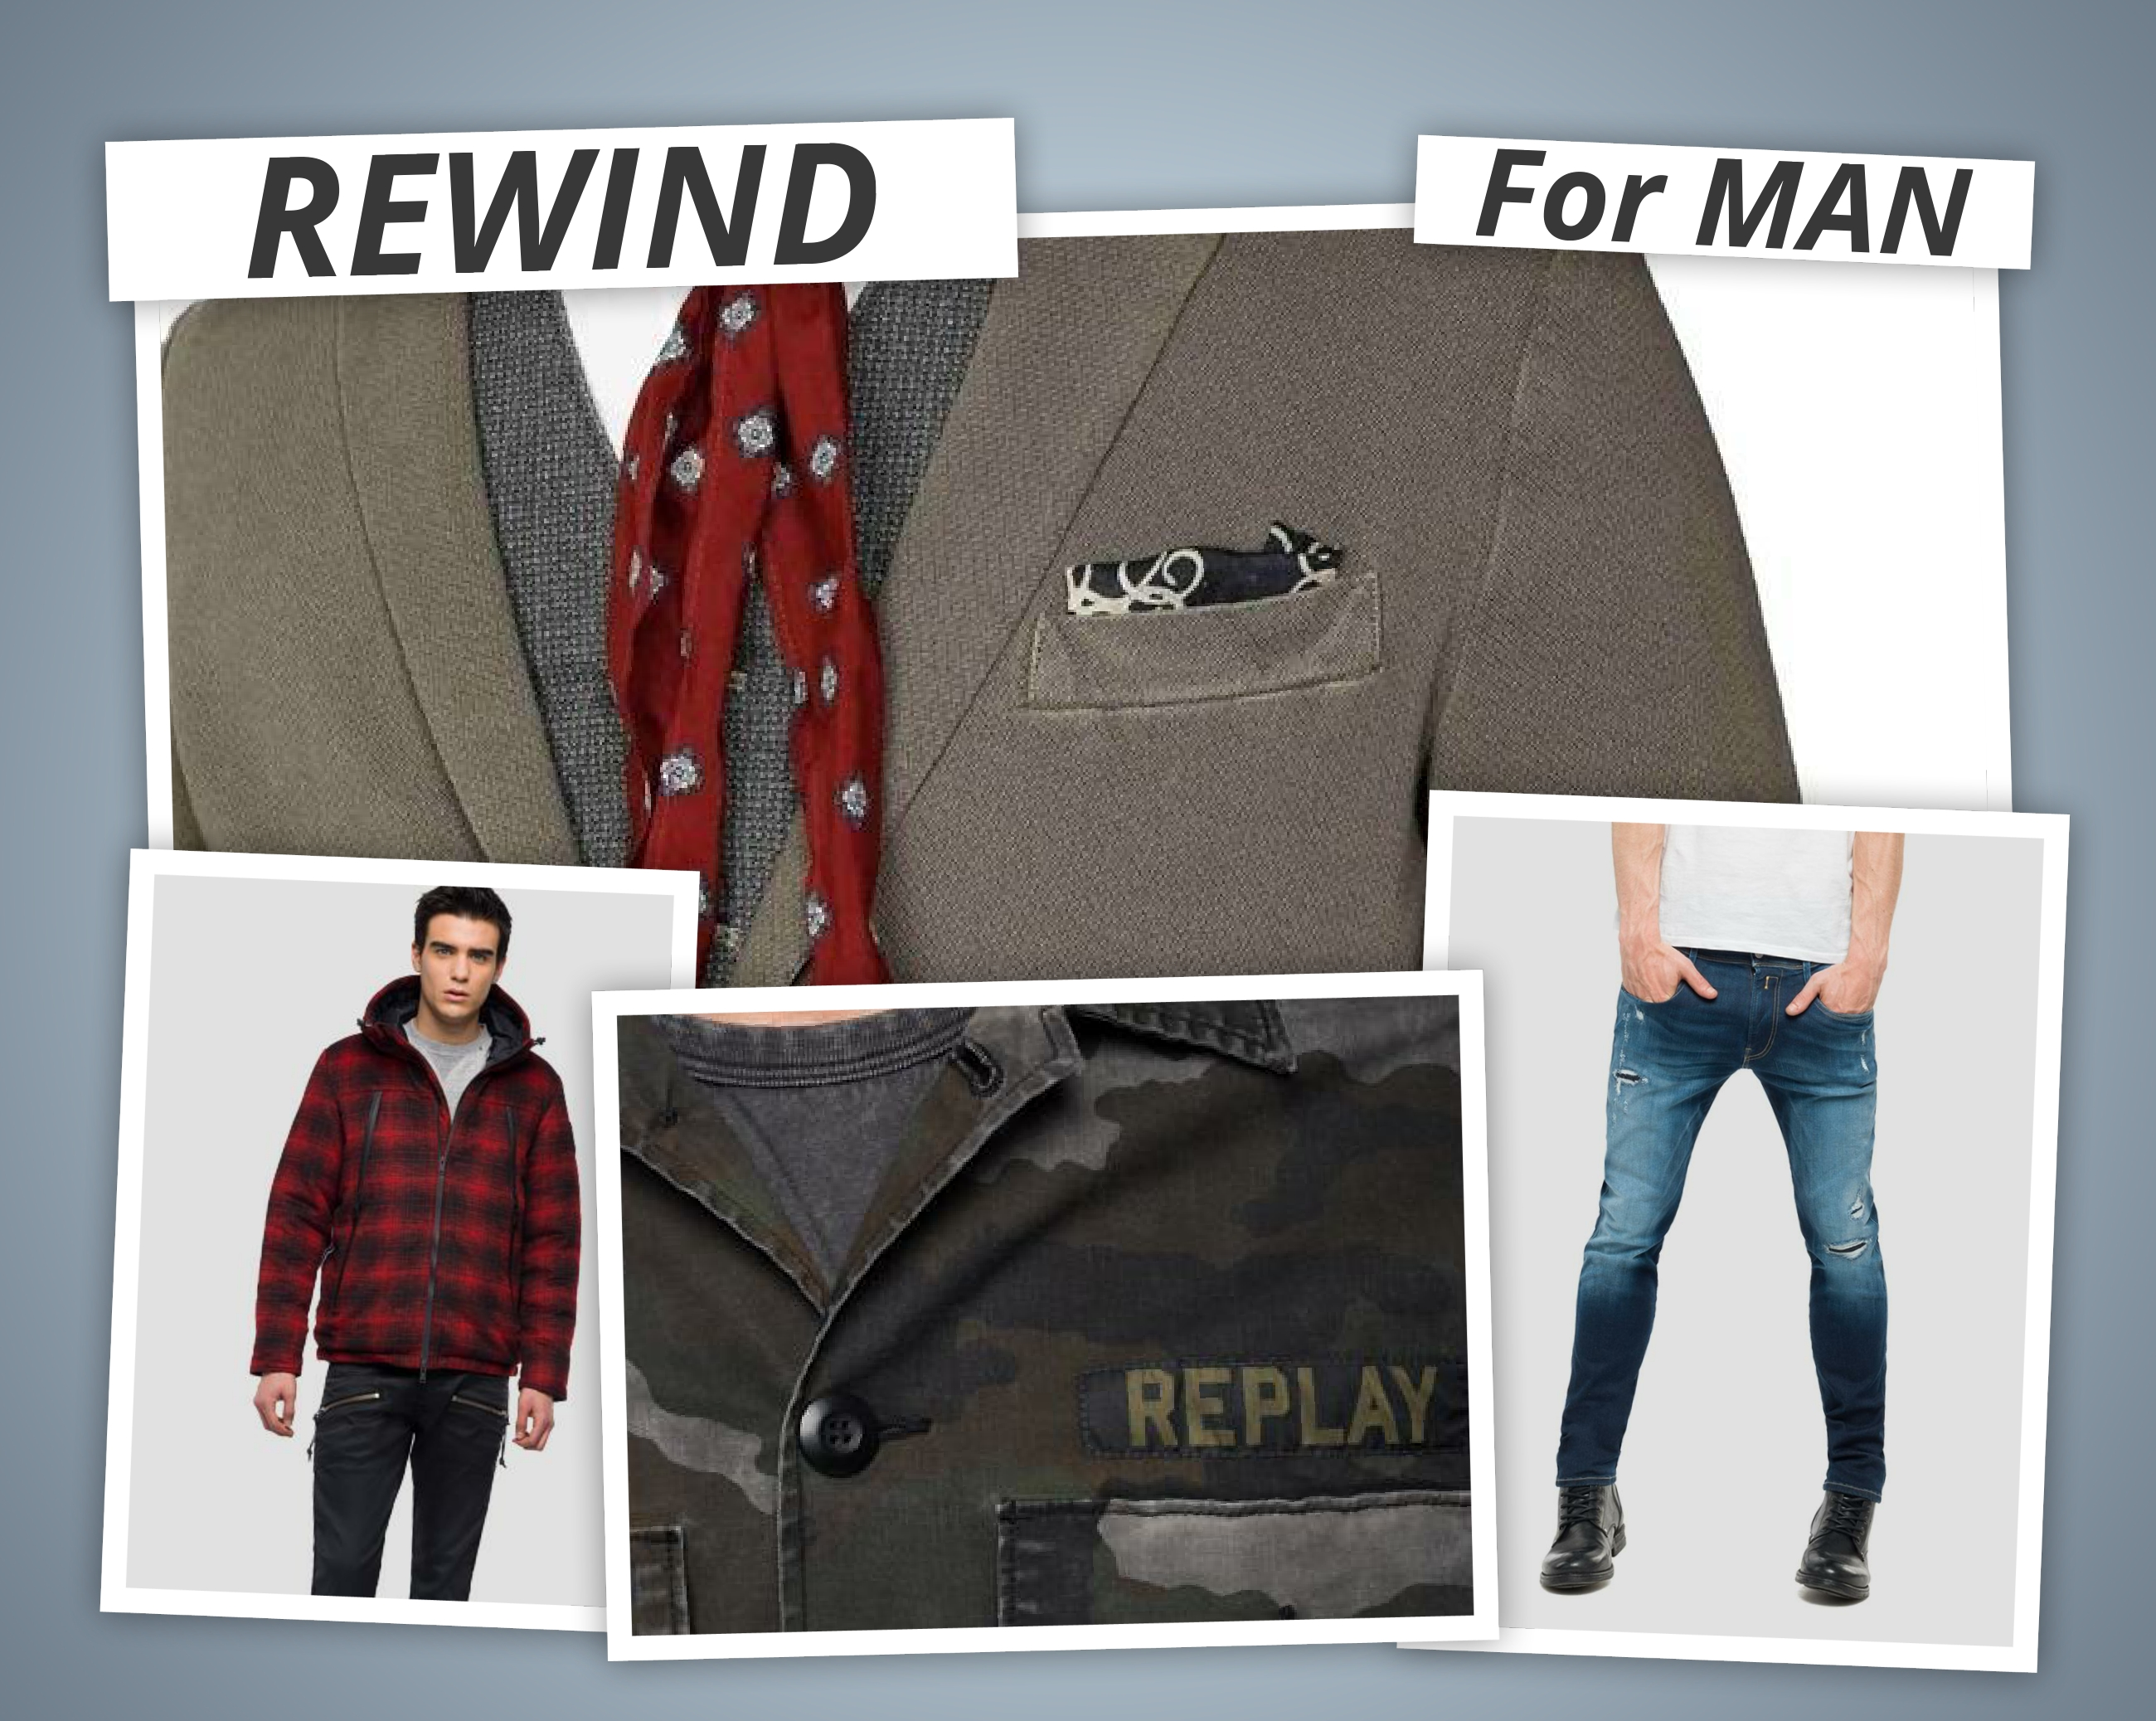 I NOSTRI OUTFIT – FOR MAN